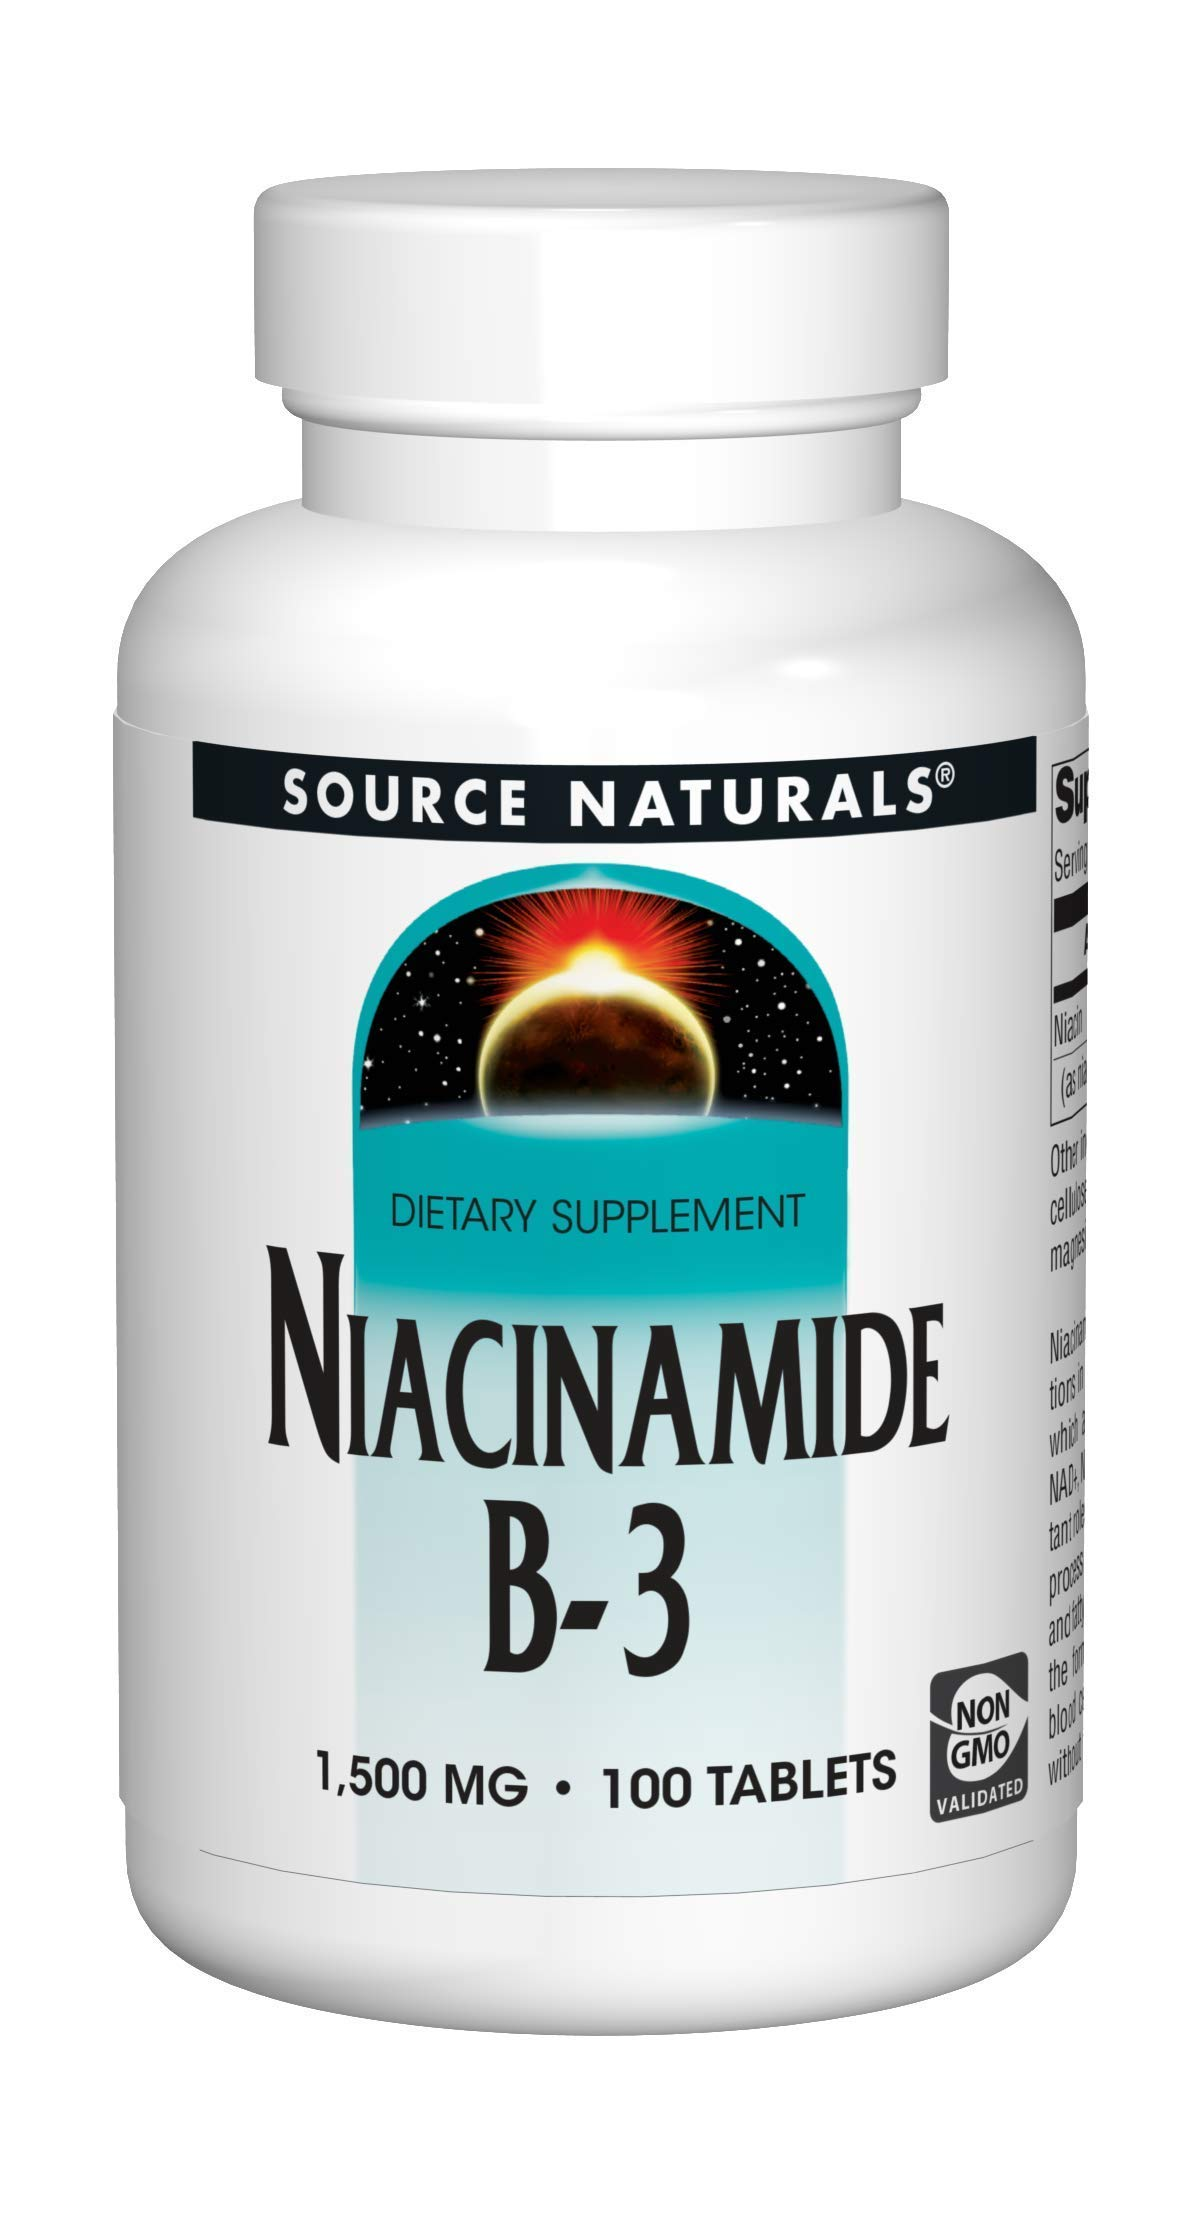 Source Naturals Niacinamide B-3, 1500 mg Dietary Supplement - 100 Tablets